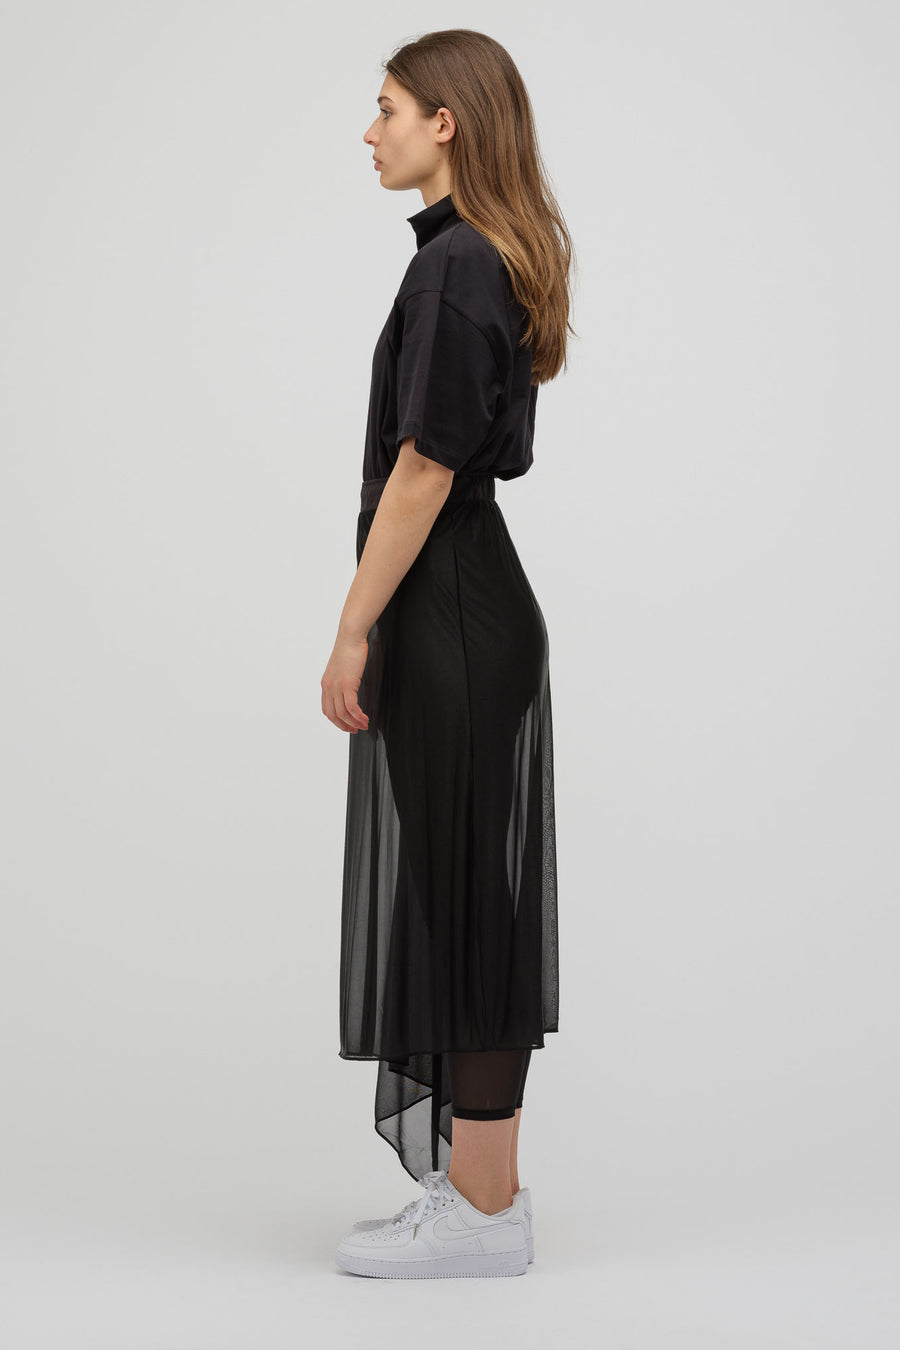 HYKE Knit Skirt in Black - Notre